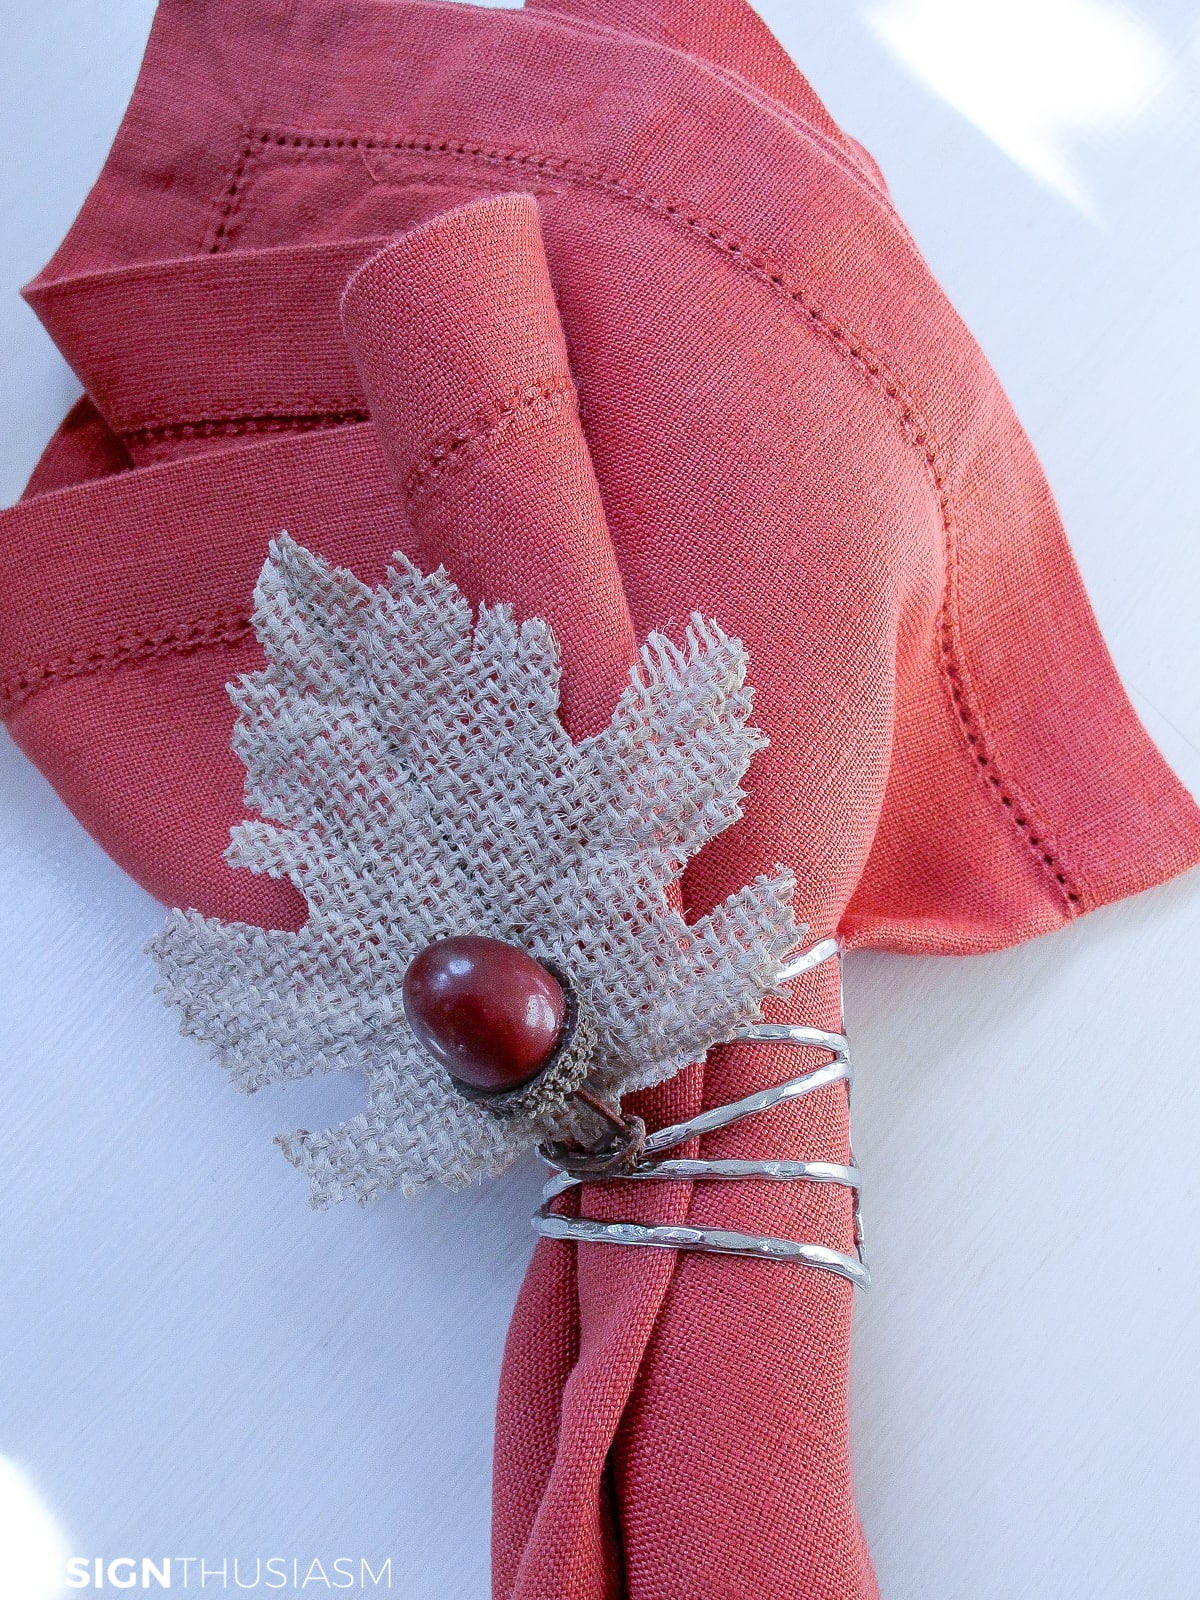 DIY fall napkin rings with acorns and burlap leaves